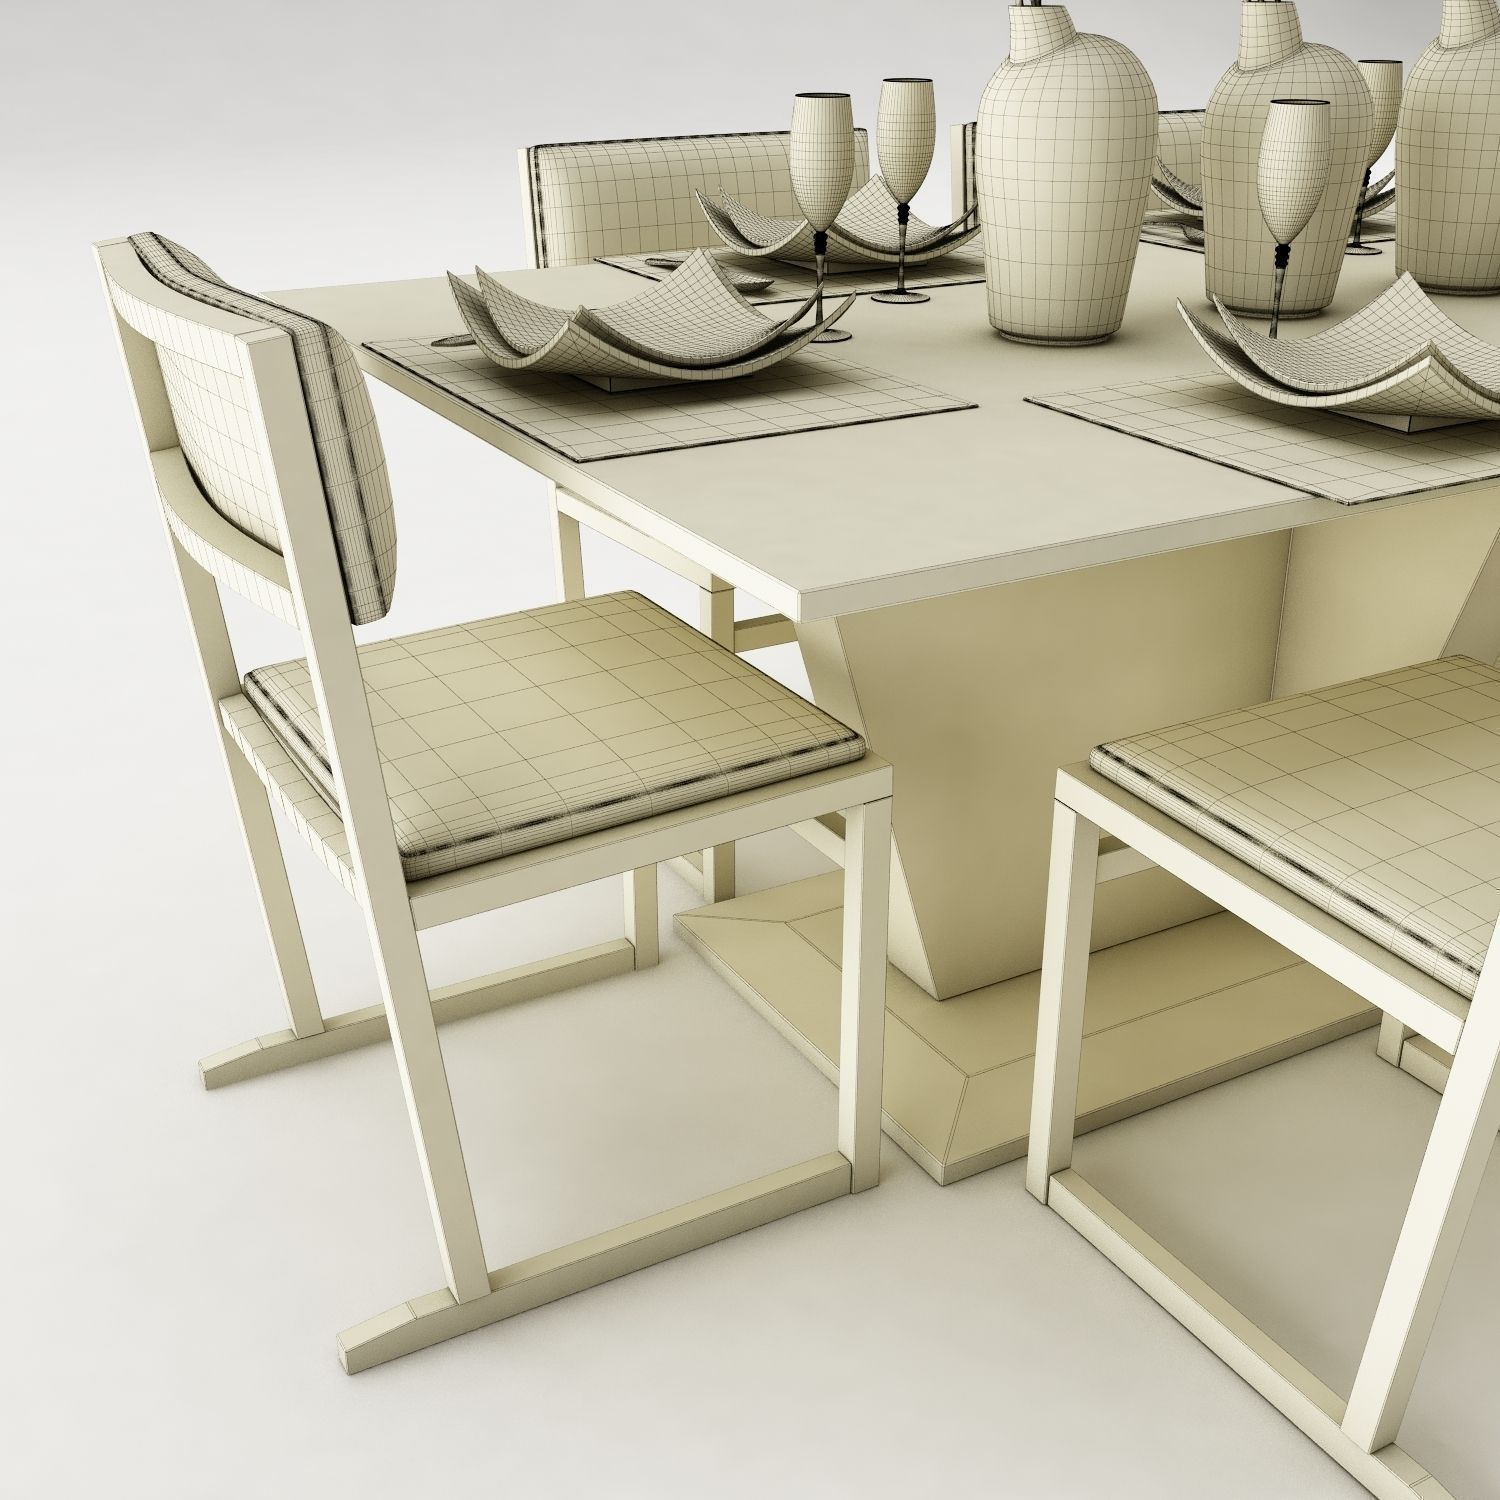 Dining table set 20 3d model max obj 3ds fbx mtl for Dining room table 3ds max